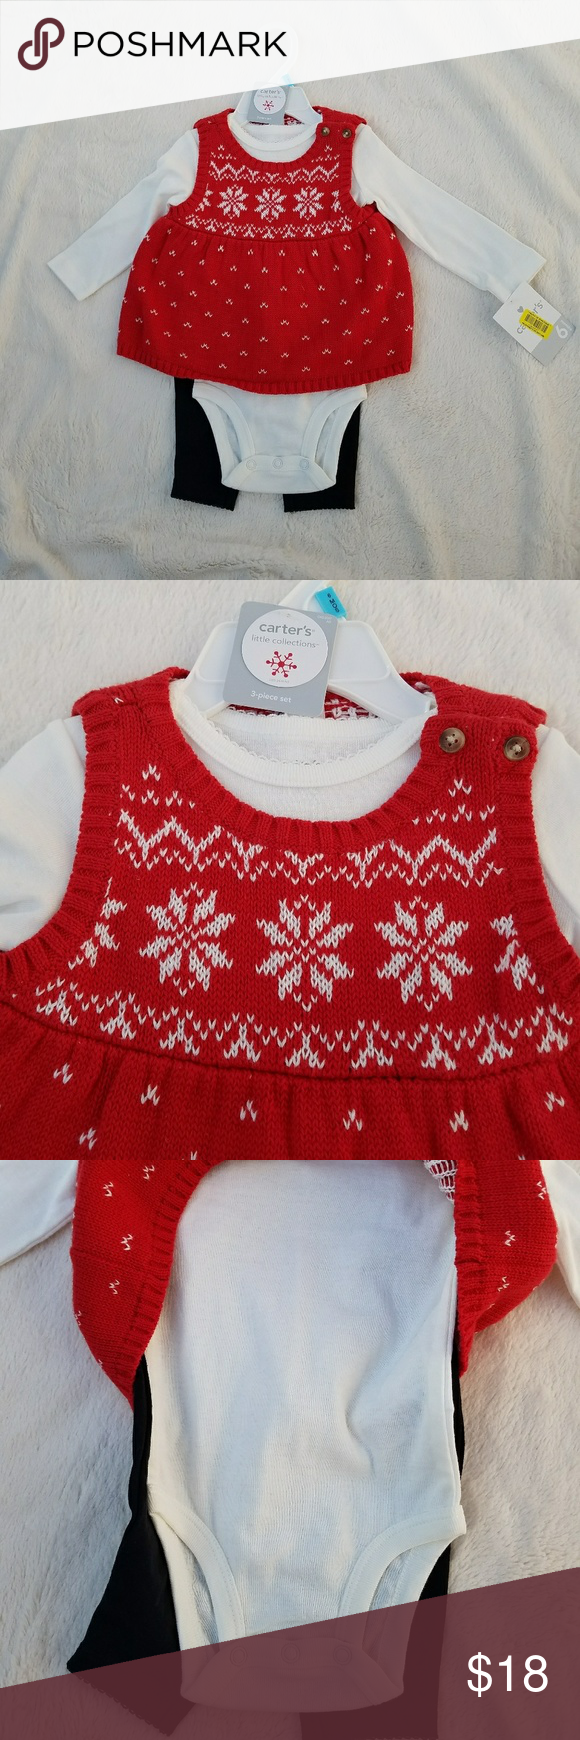 db0c50a43366 🎄SALE🎄NWT Baby Girls 3 Piece Holiday Sweater Set NWT